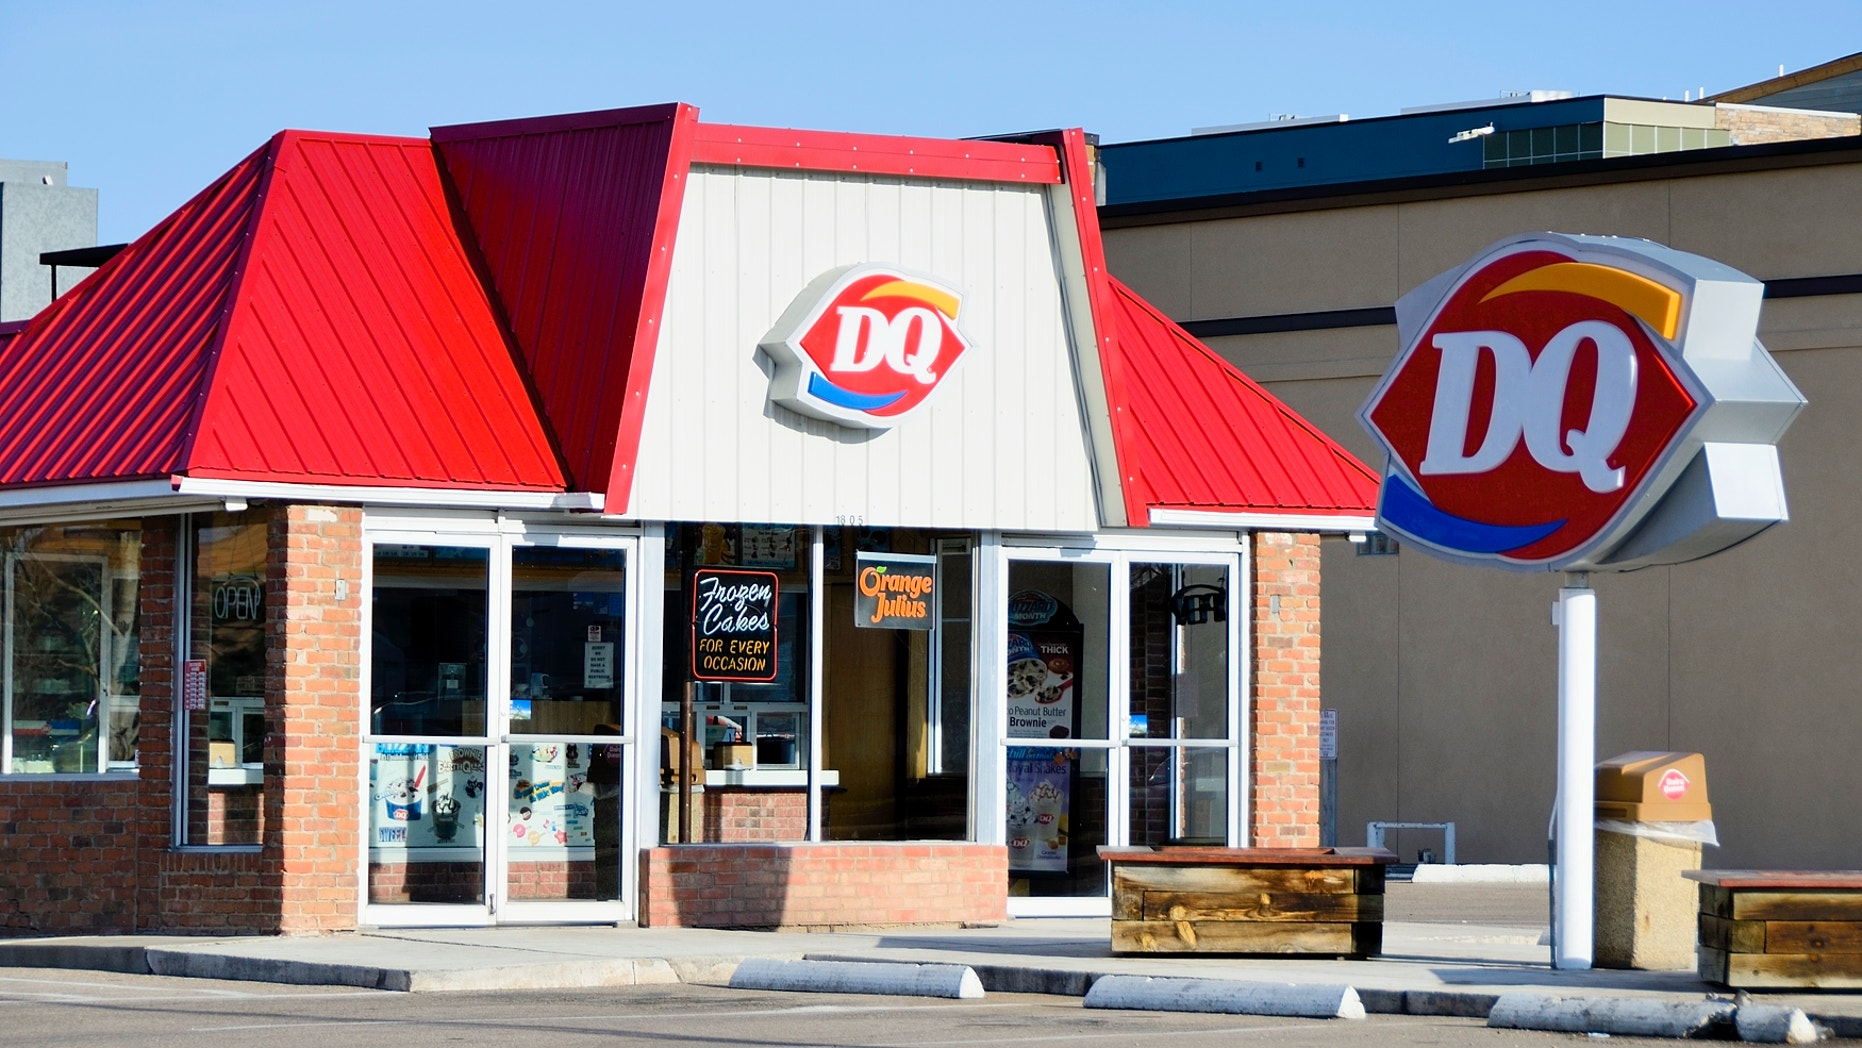 """This Wednesday, participating locations within her majesty's queendom will be handing out free small vanilla soft-serve cones as part of Dairy Queen's annual """"Free Cone Day"""" promotion."""